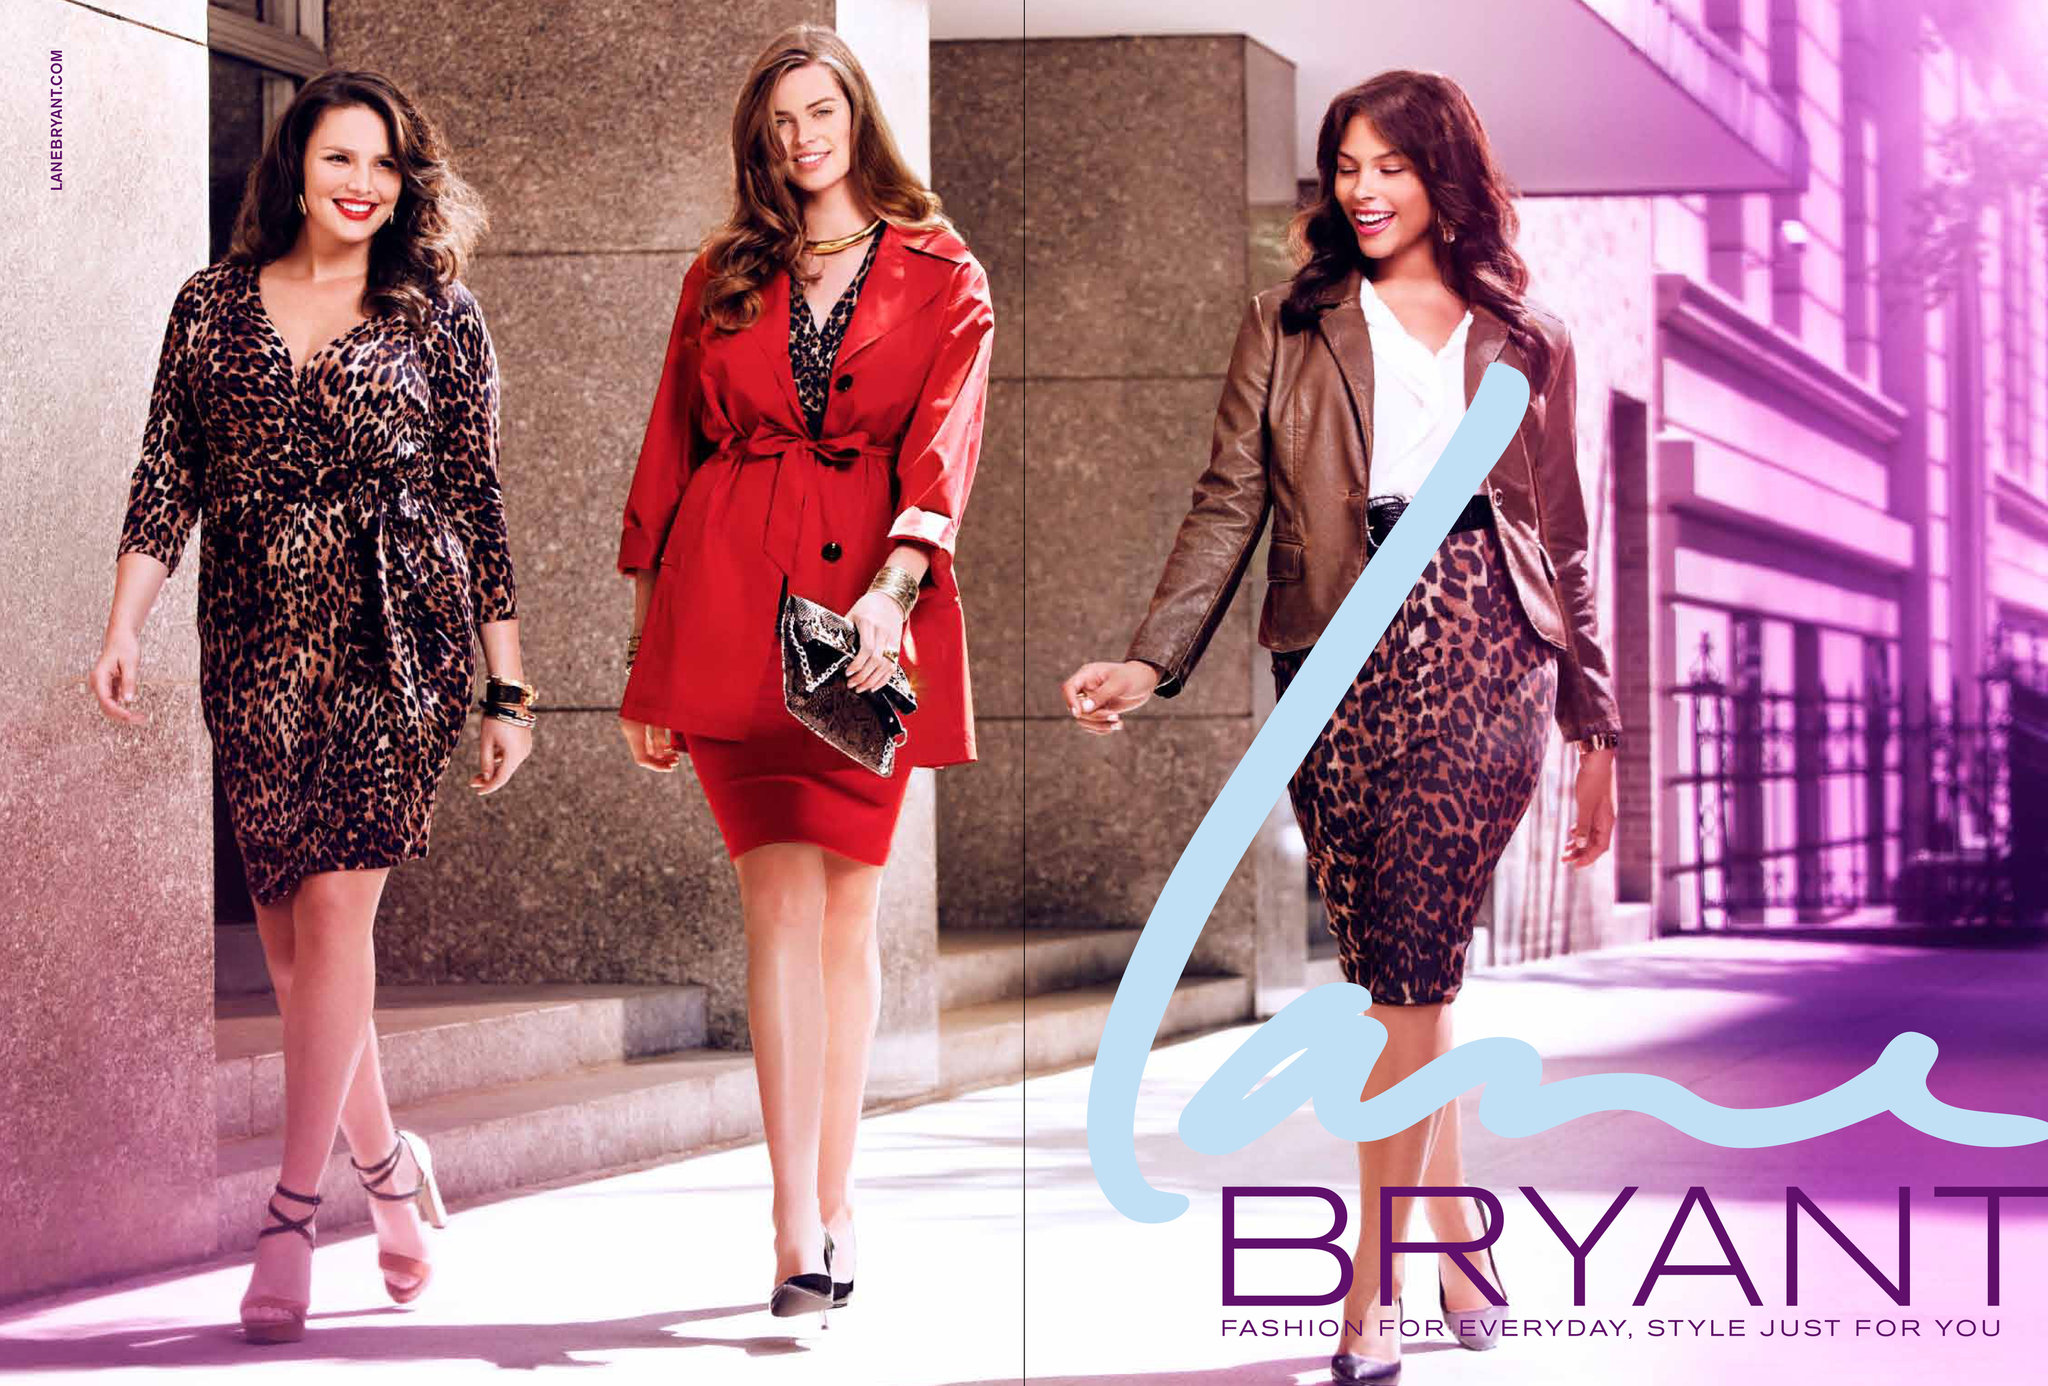 Lane Bryant Introduces New Advertising and Marketing.